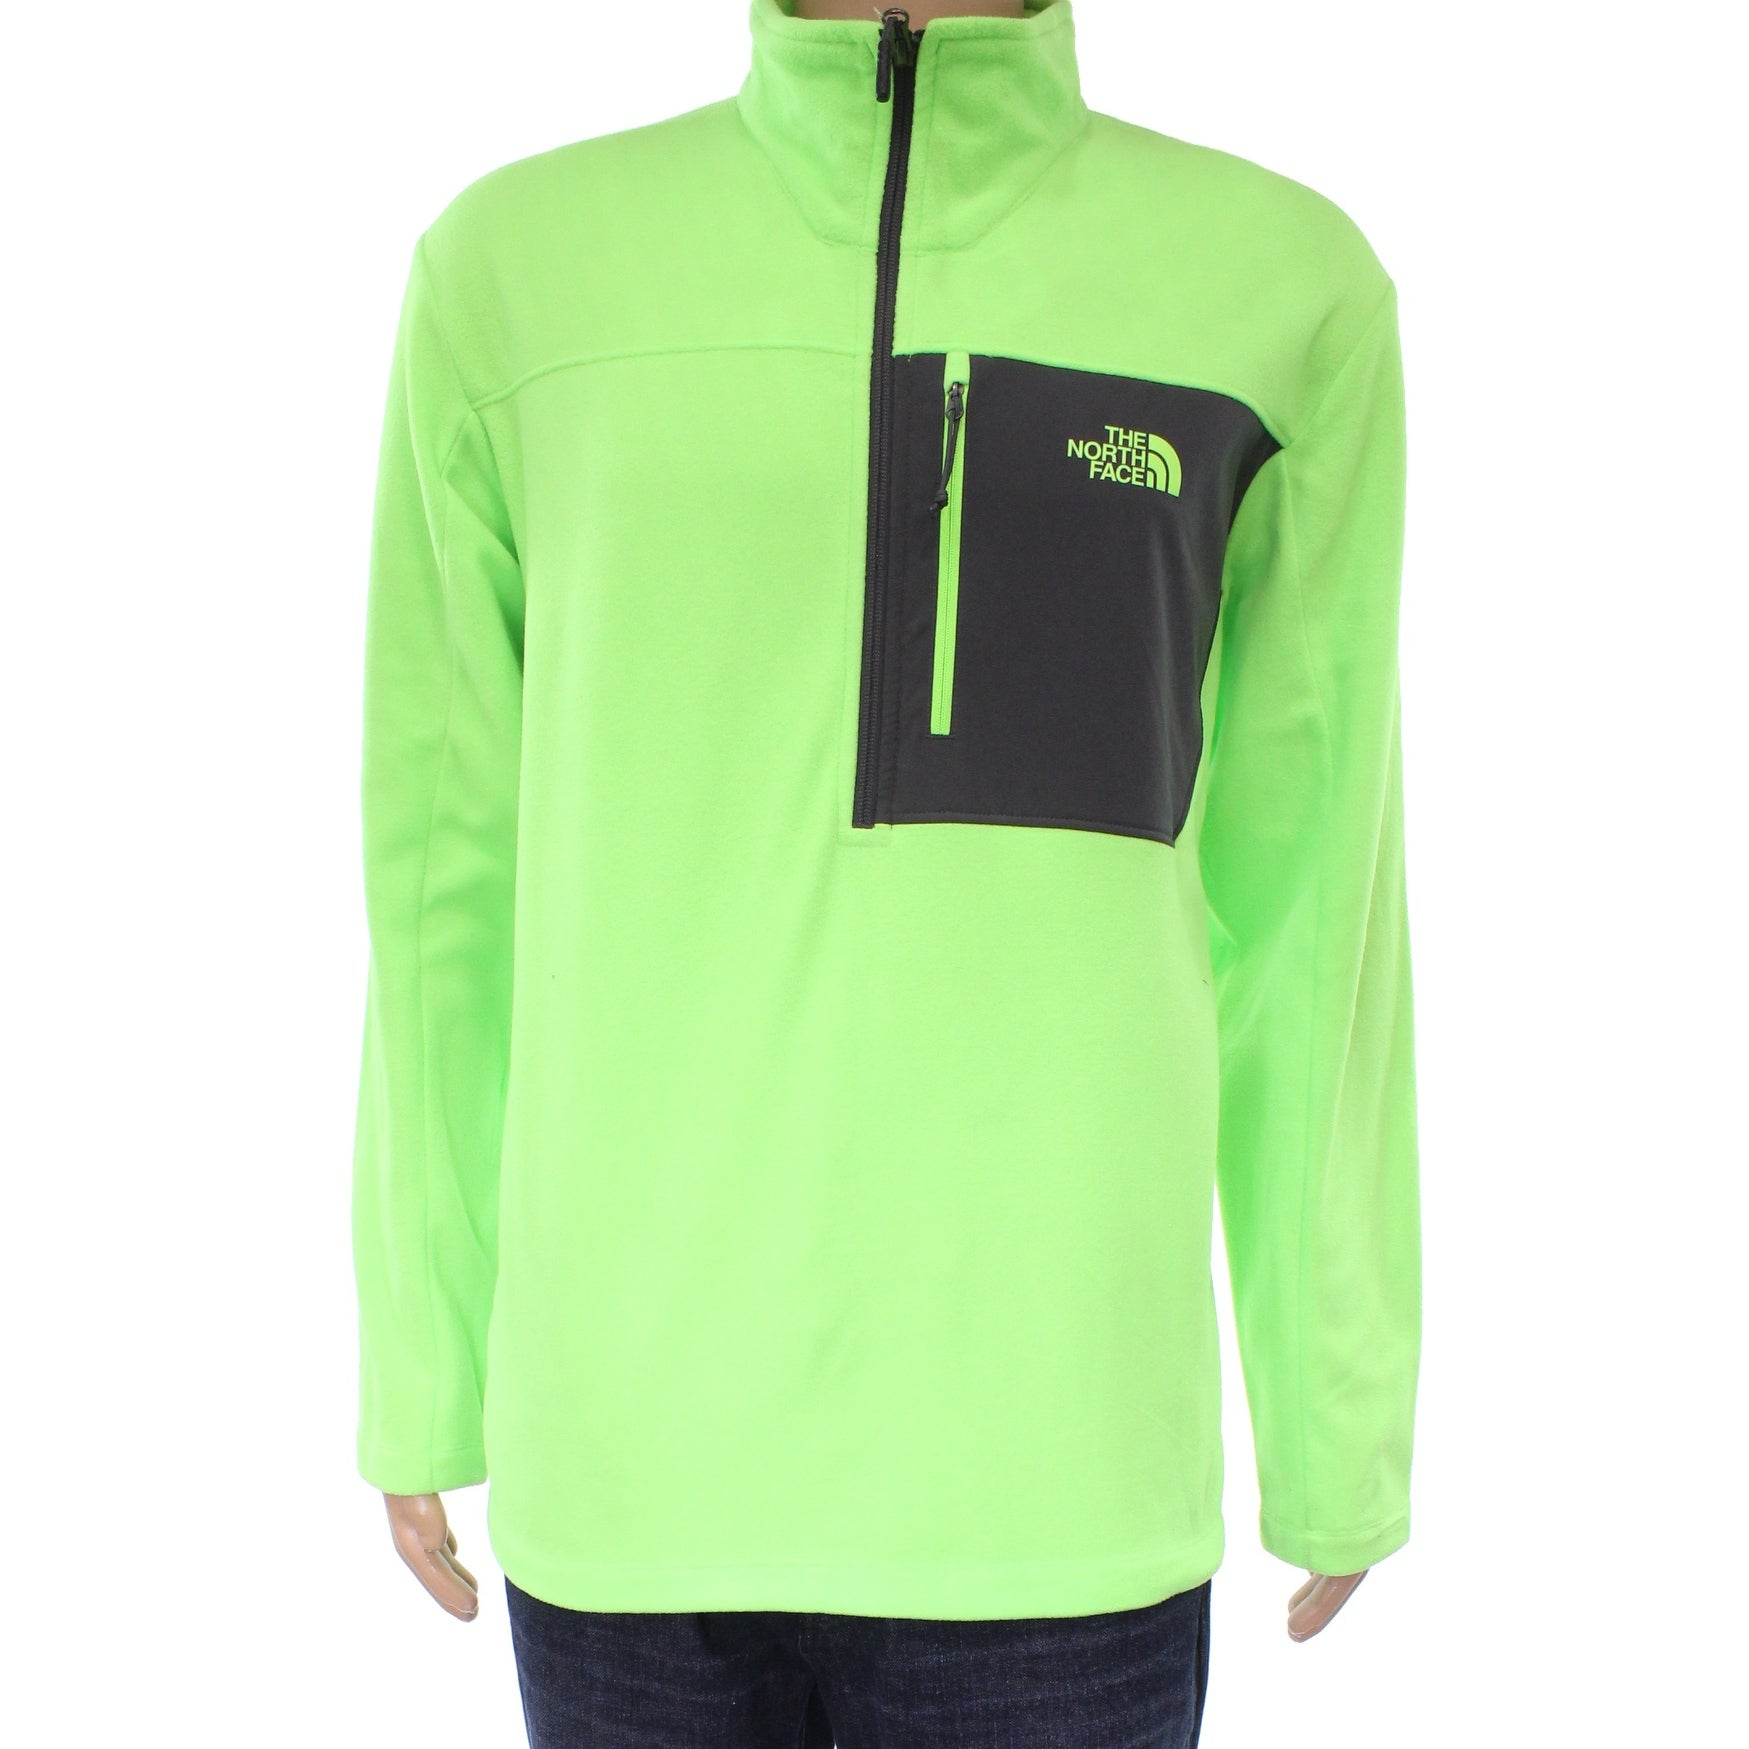 1d5af30db The North Face NEW Neon Green Mens Size XL Fleece 1/2 Zip Sweater